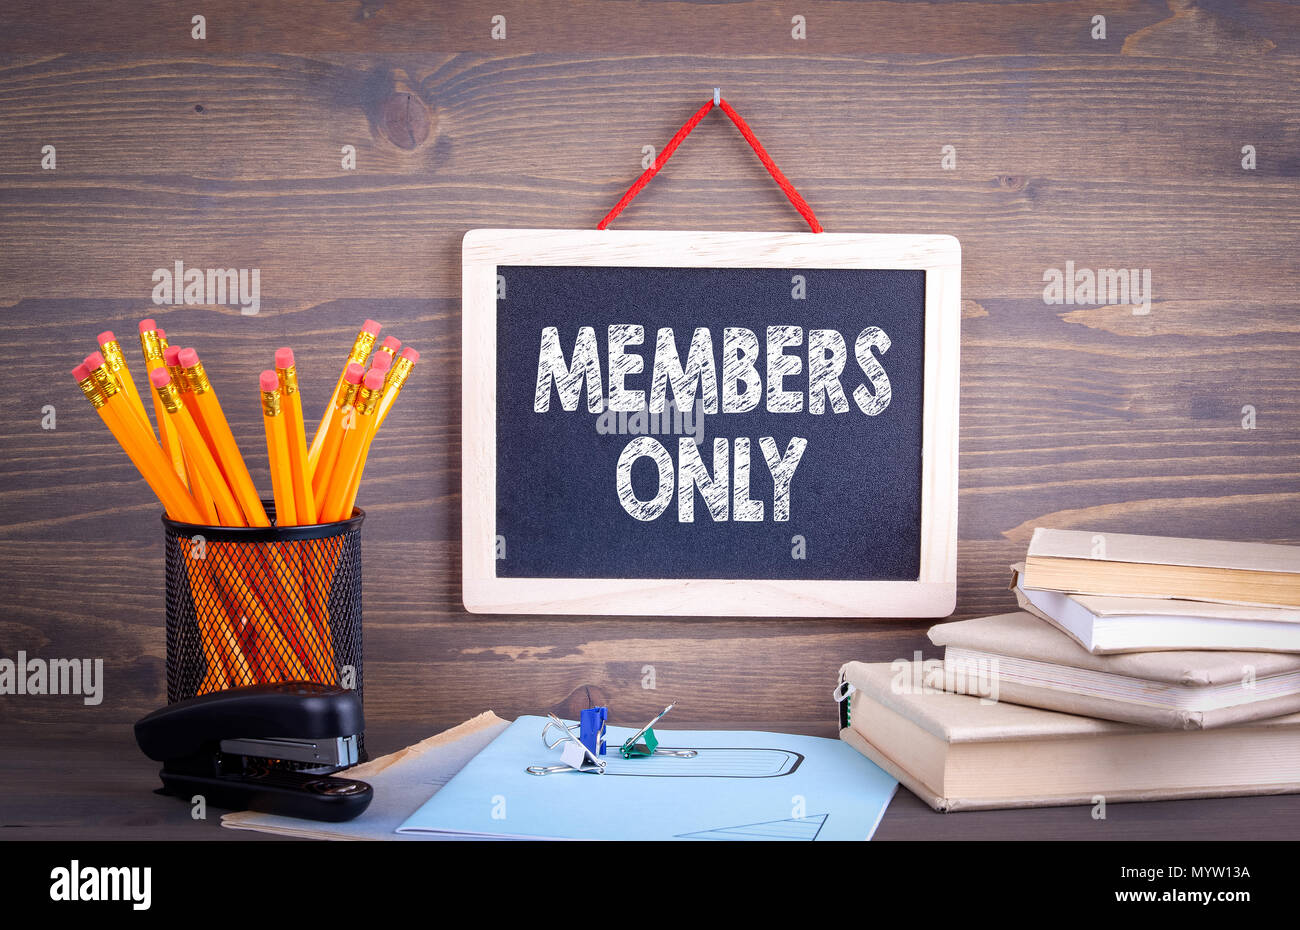 Members only, Business Concept - Stock Image